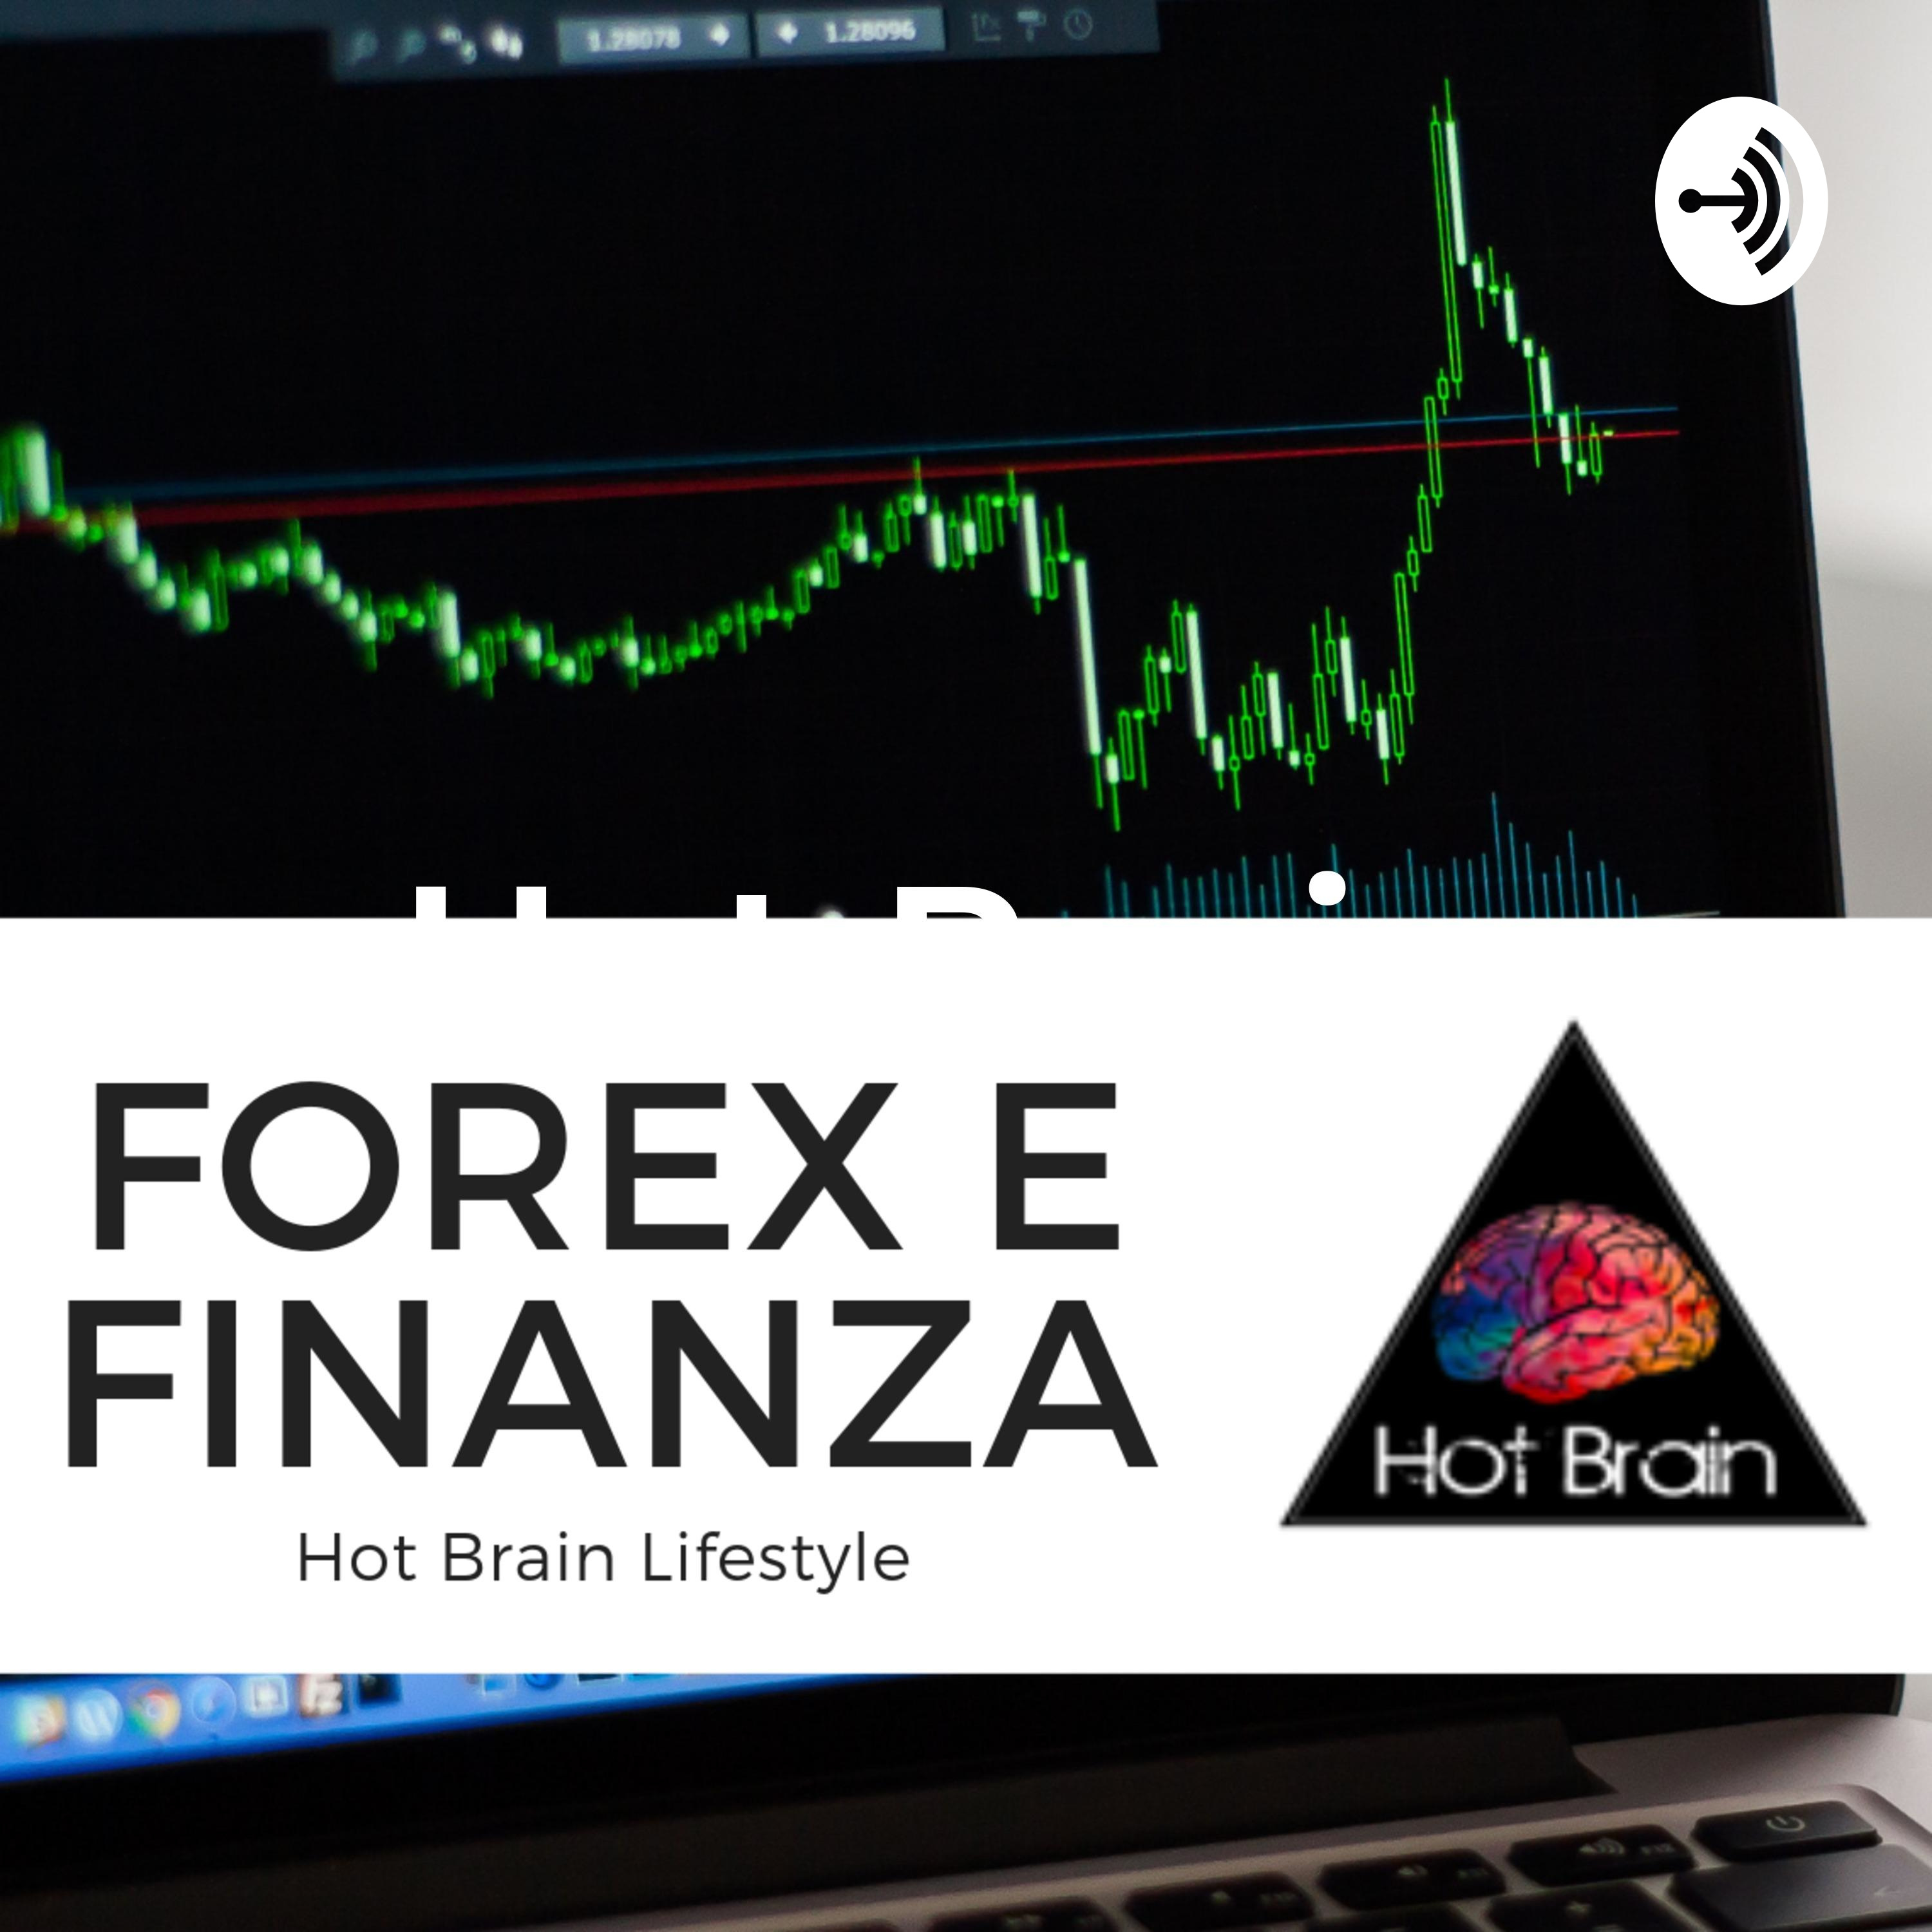 6. Hot Brain - Forex - Orders (Limit, Market, Stop Loss)